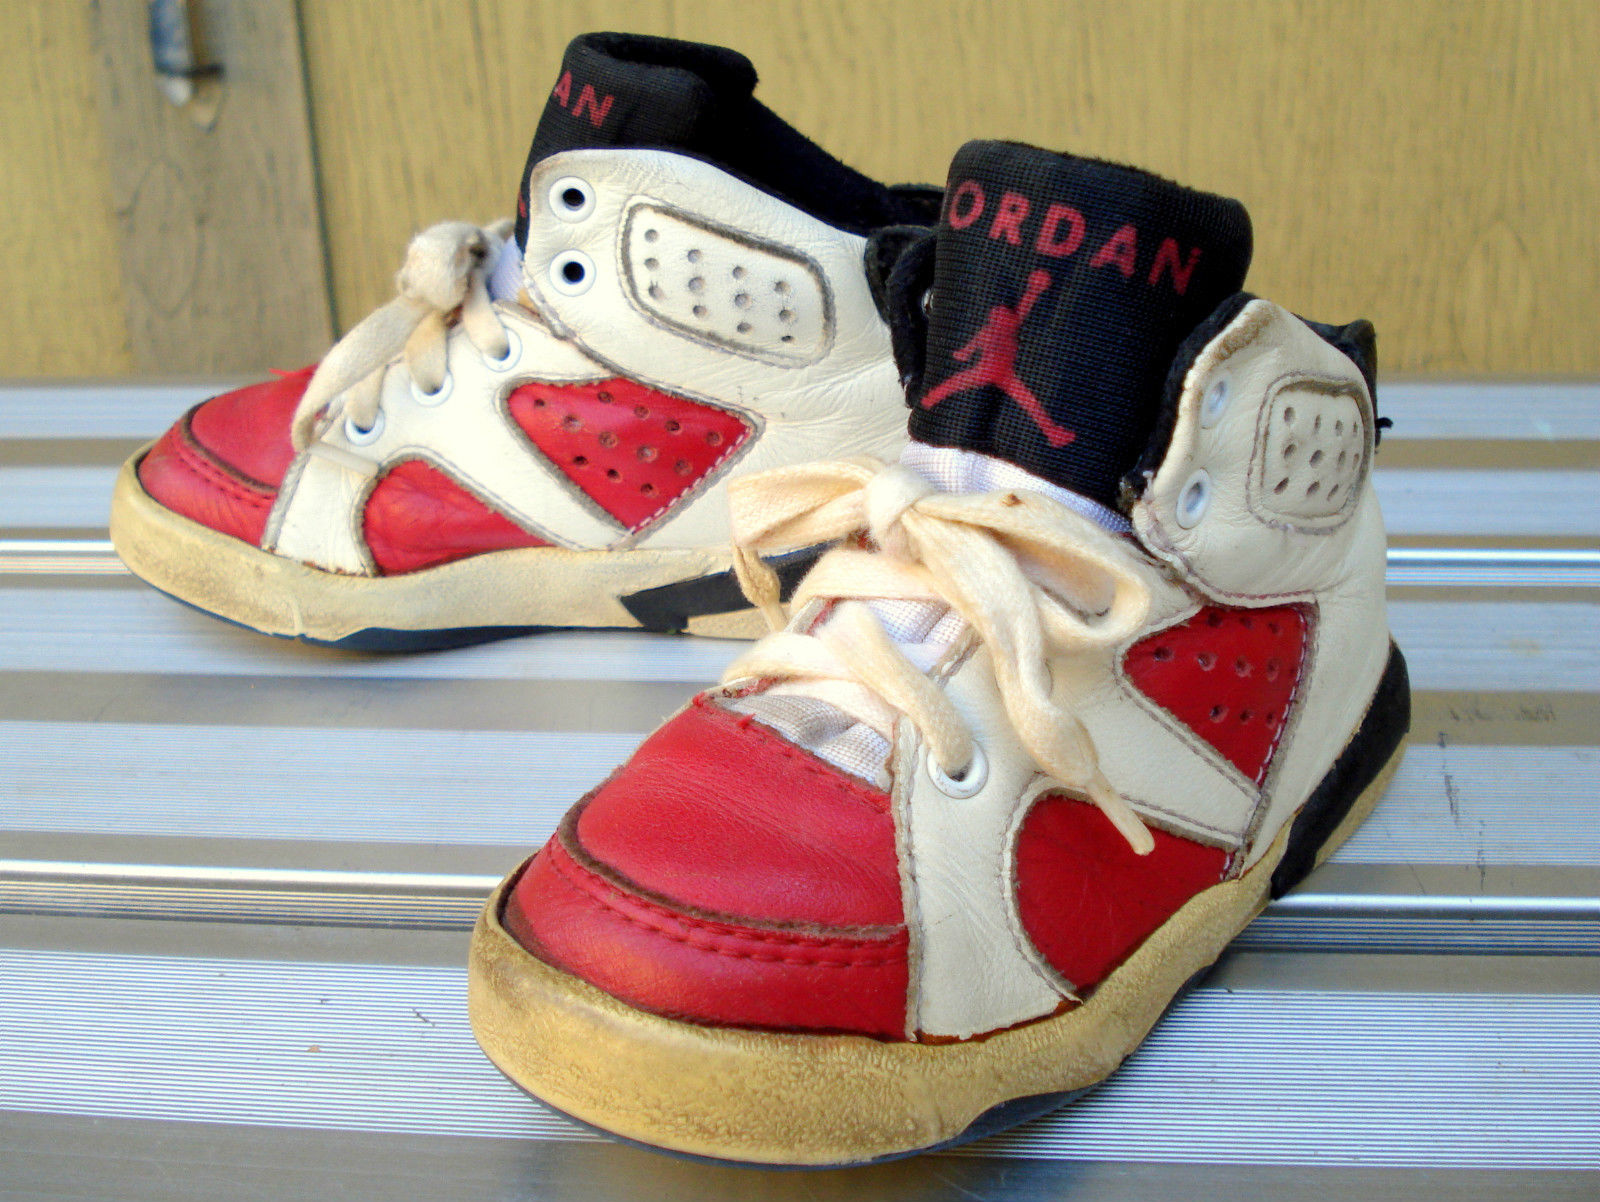 small jordan shoes